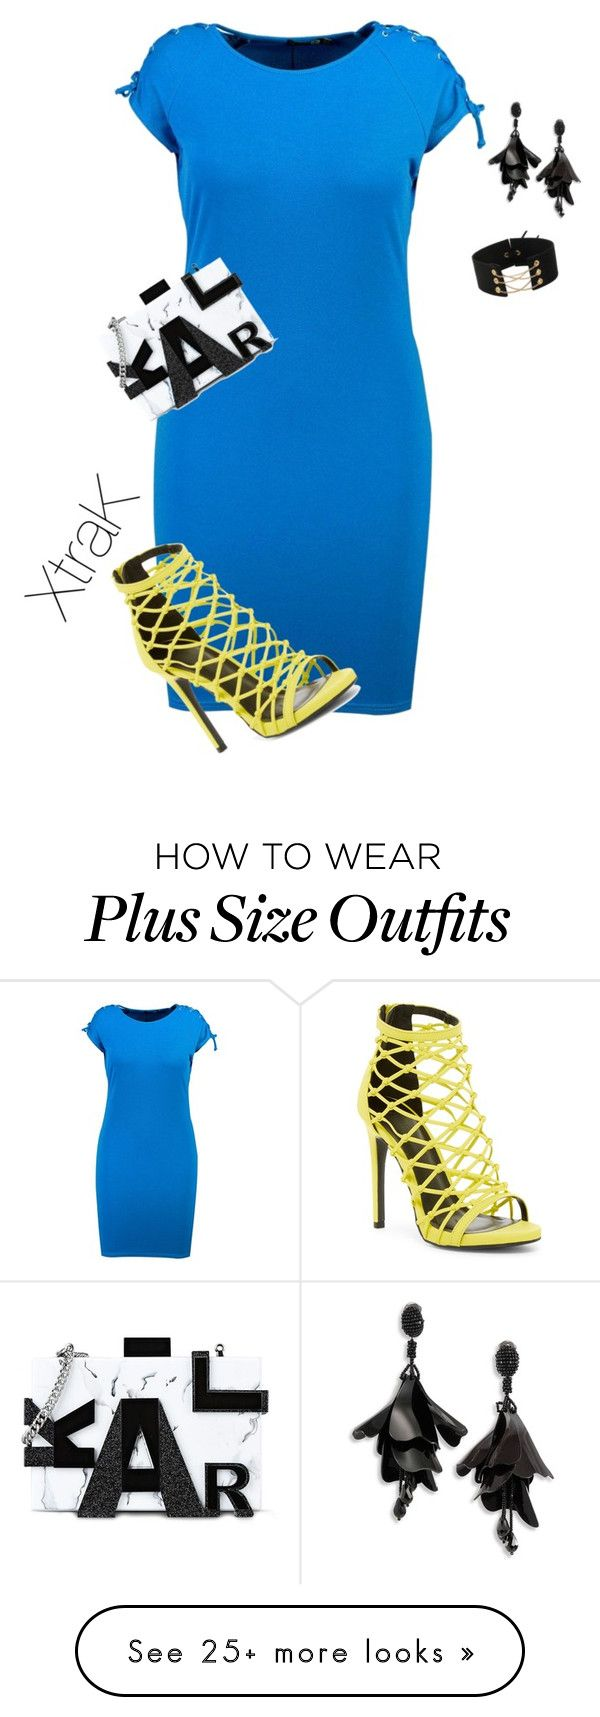 """""""Plus size bright lights and nights"""" by xtrak on Polyvore featuring Boohoo, Wild Diva, Karl Lagerfeld and Oscar de la Renta"""